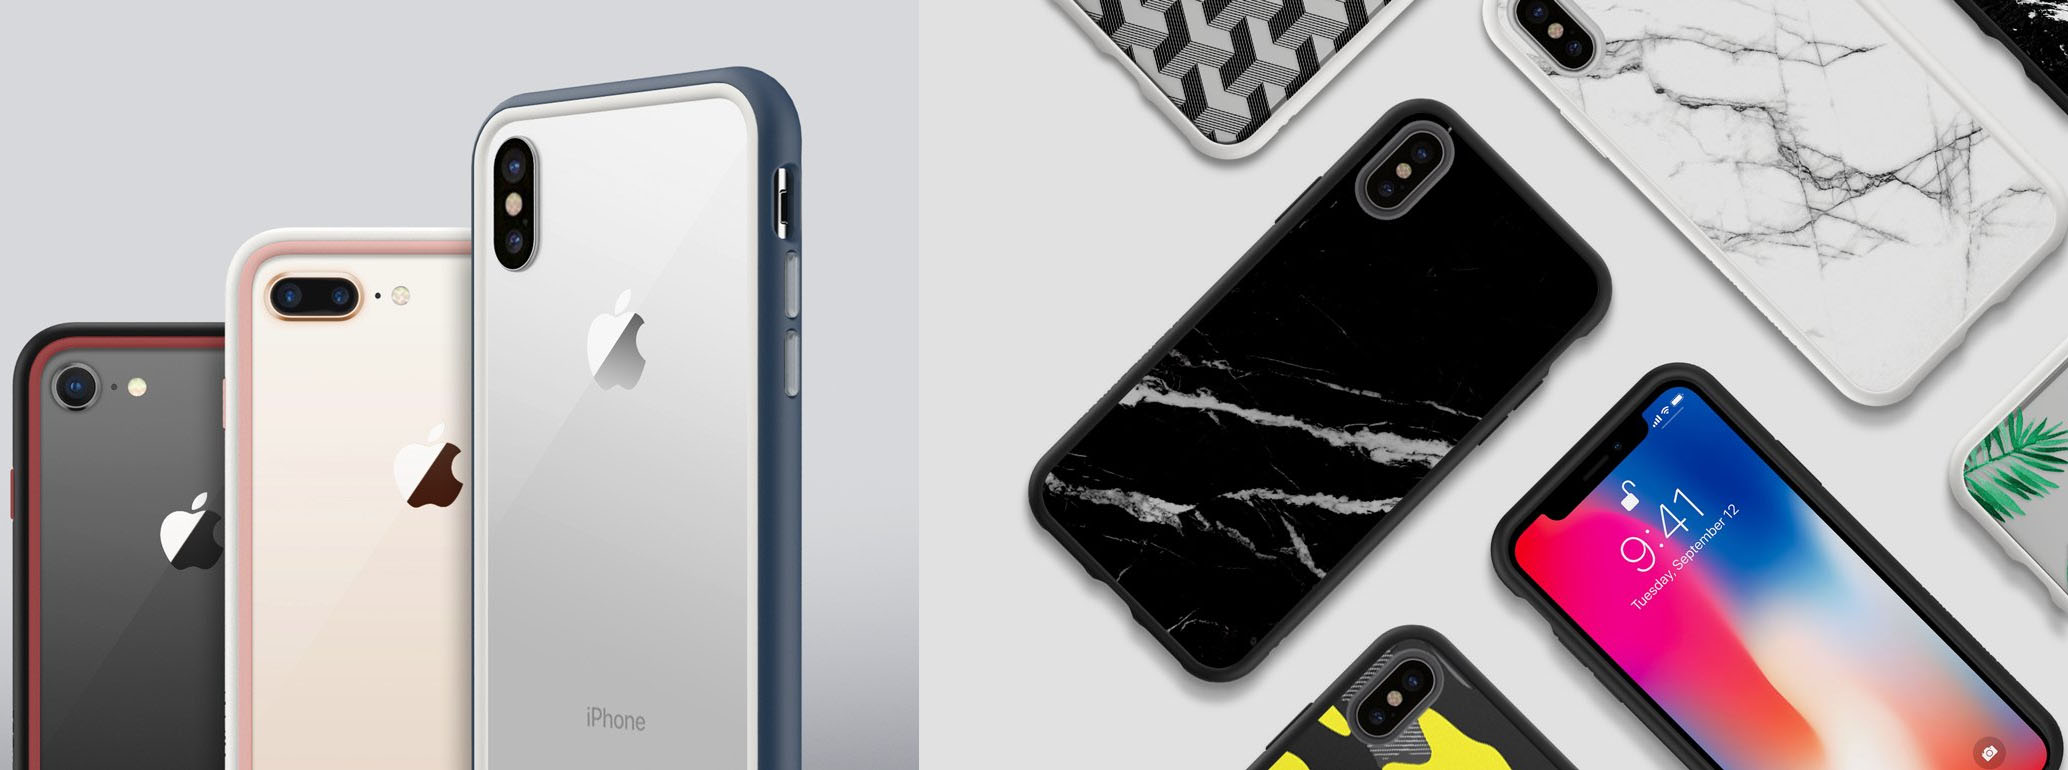 online retailer 84f82 2f68d RhinoShield Mod Case for iPhone X Review: A Bumper with a Backbone ...